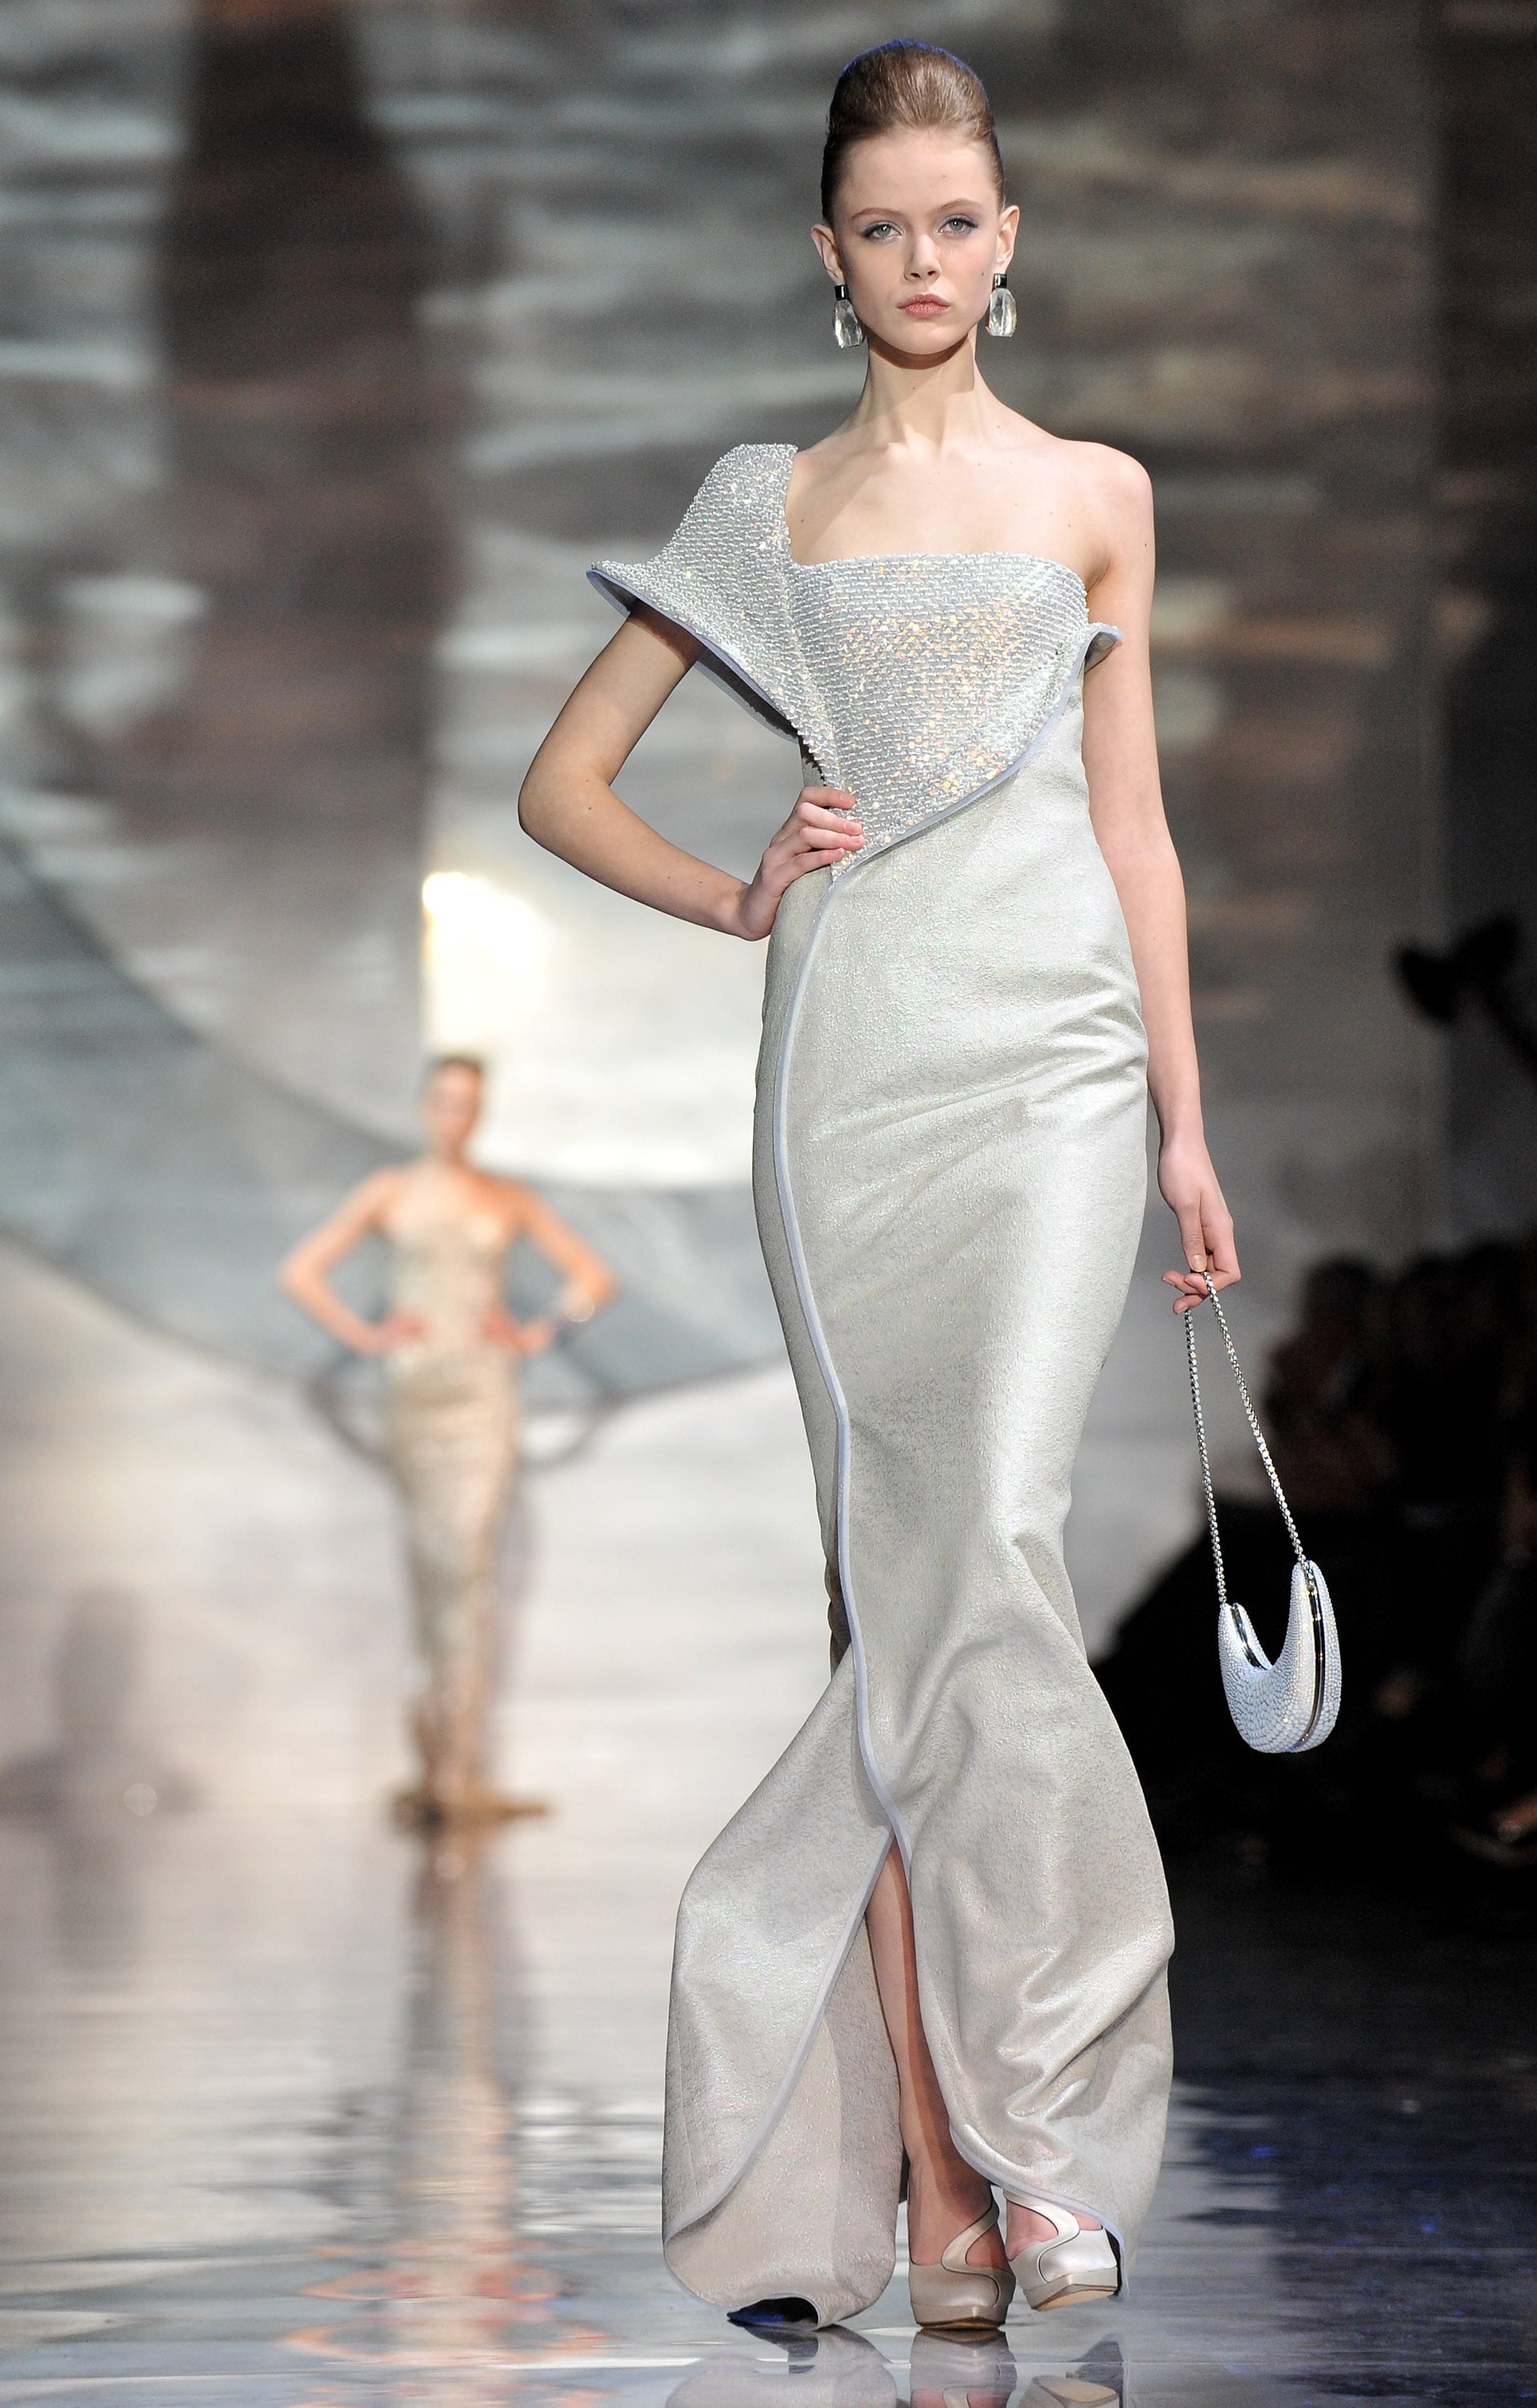 Prive armani haute couture spring recommend to wear in everyday in 2019